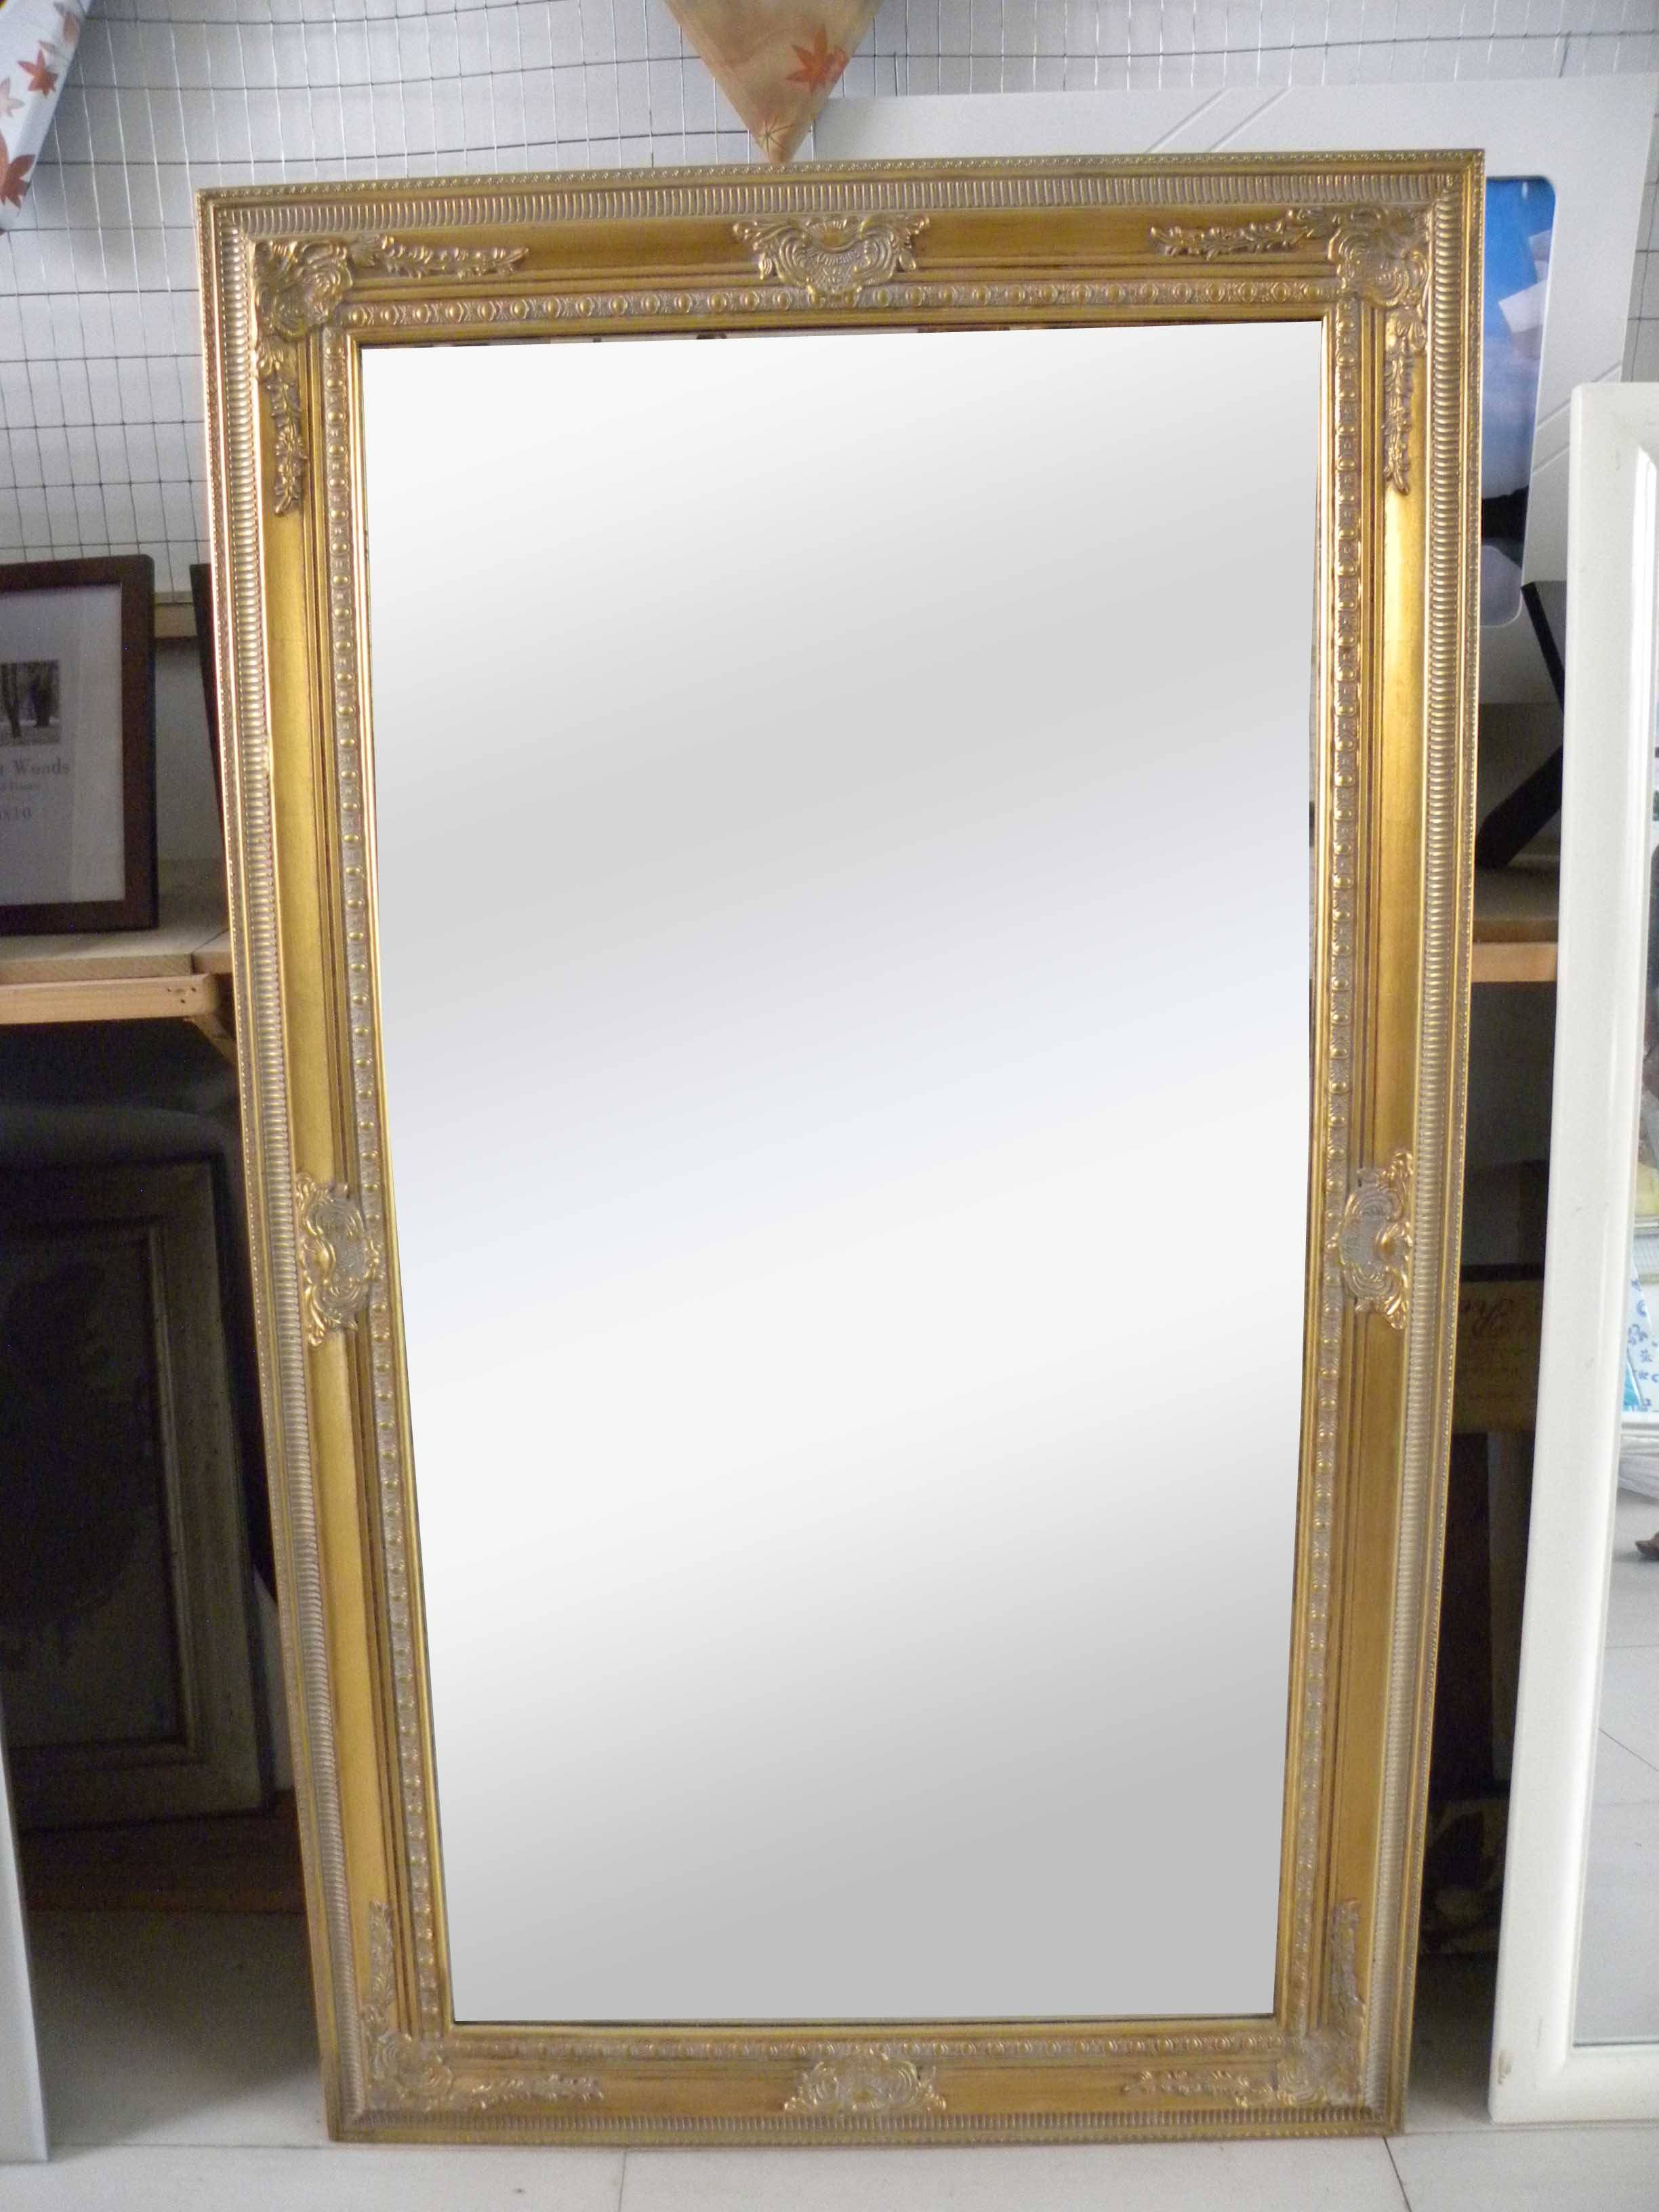 DECORATIVE MIRROR for europ market